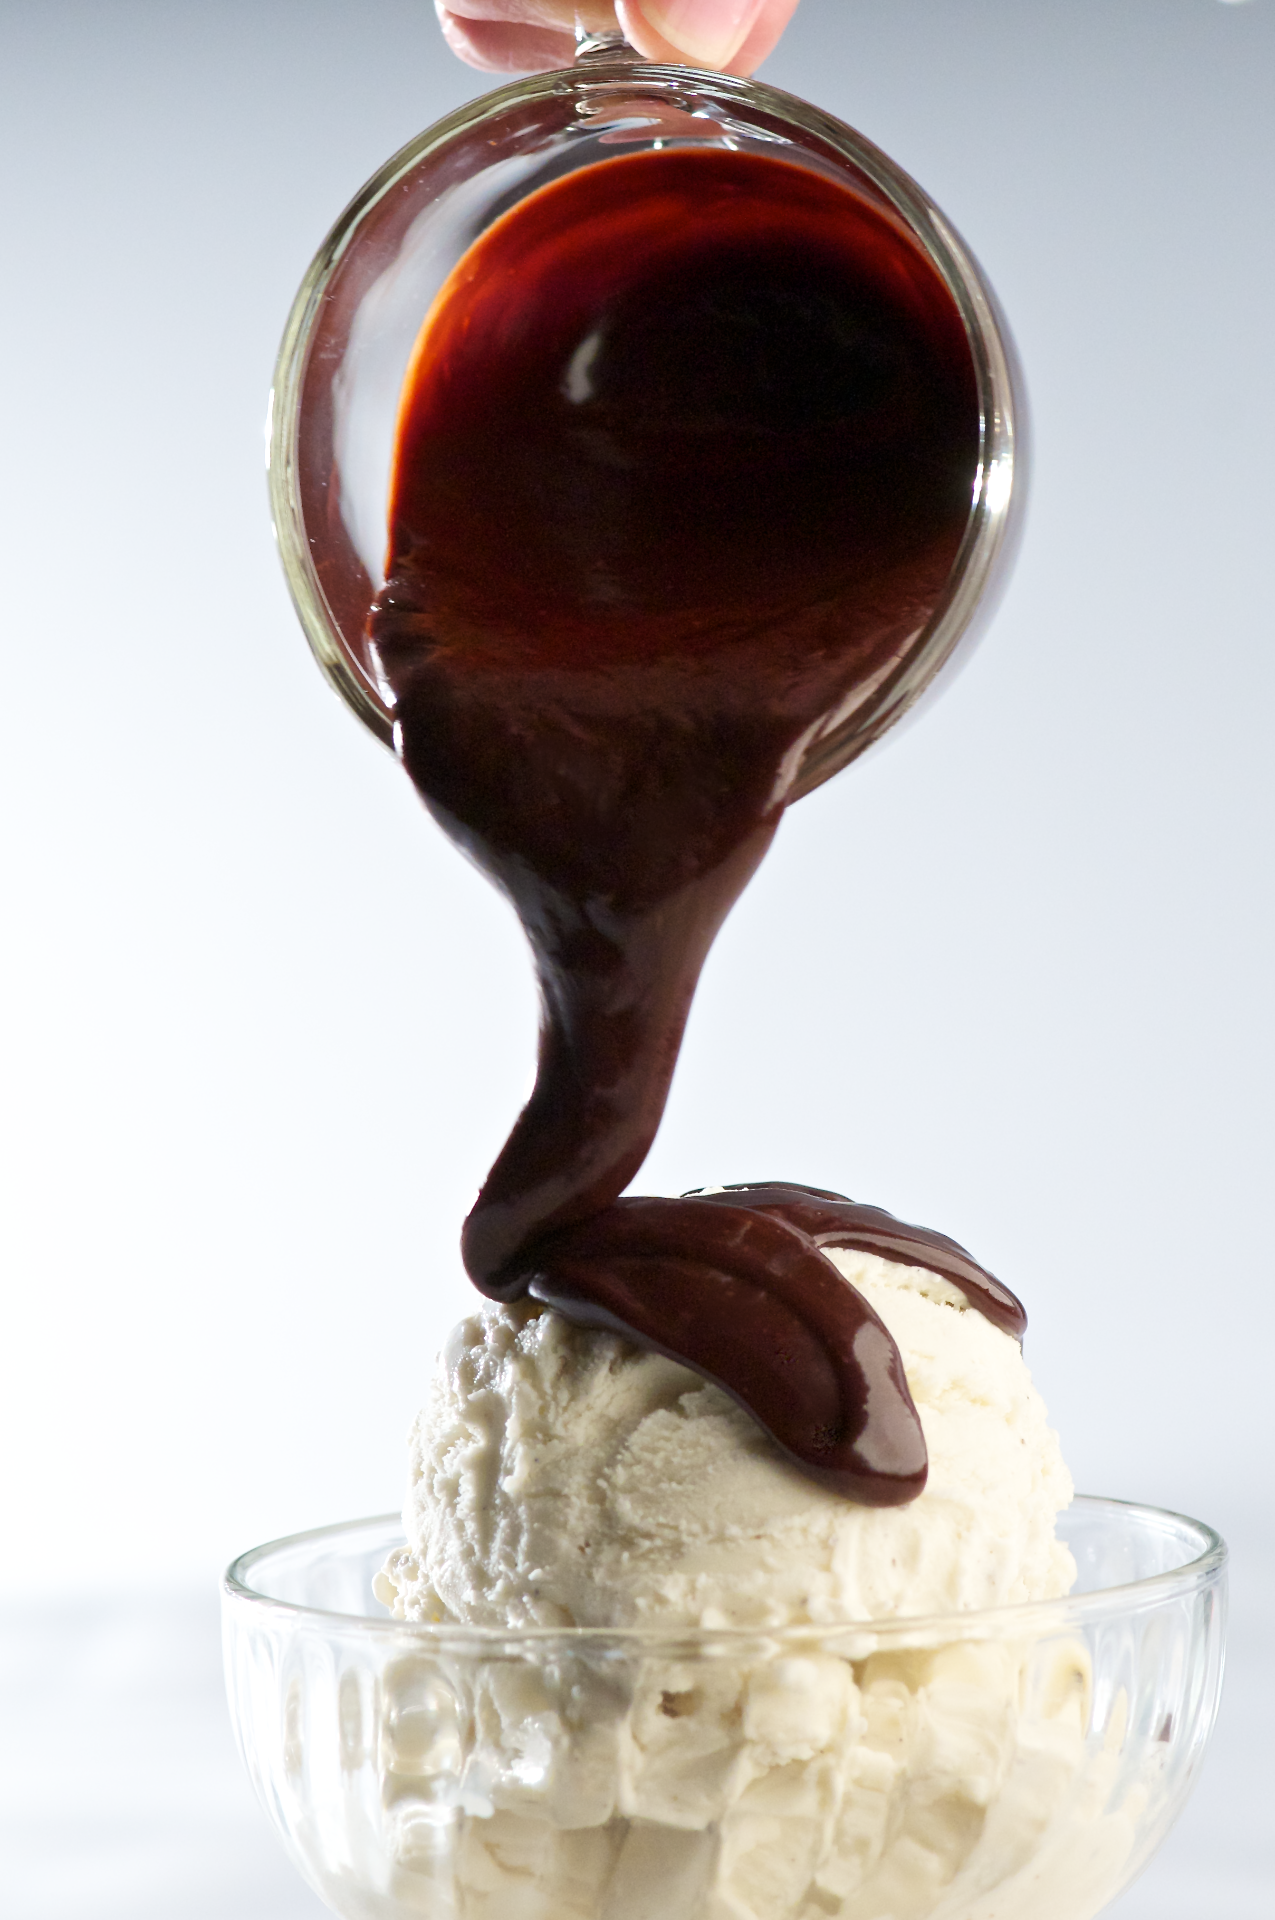 This dark glossy artisan-style dark chocolate sauce has a rich bittersweet chocolate flavor, velvety smooth texture and tastes wonderful served warm, drizzled over ice cream and desserts.